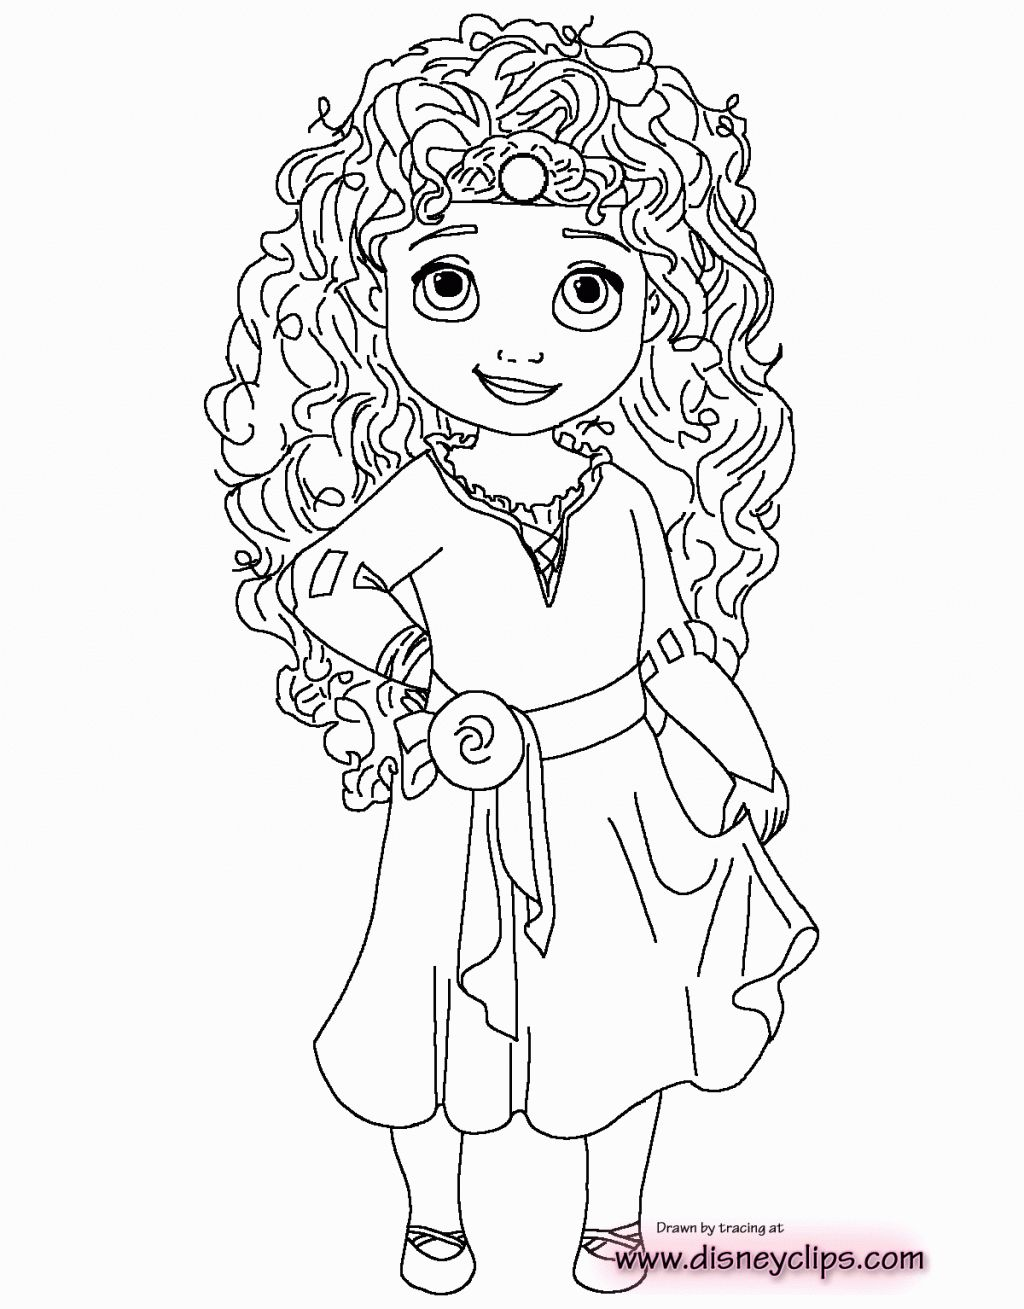 Brave Princess Merida Coloring Page For Kids Disney Princess Coloring Pages Prin Disney Princess Coloring Pages Disney Princess Colors Princess Coloring Pages